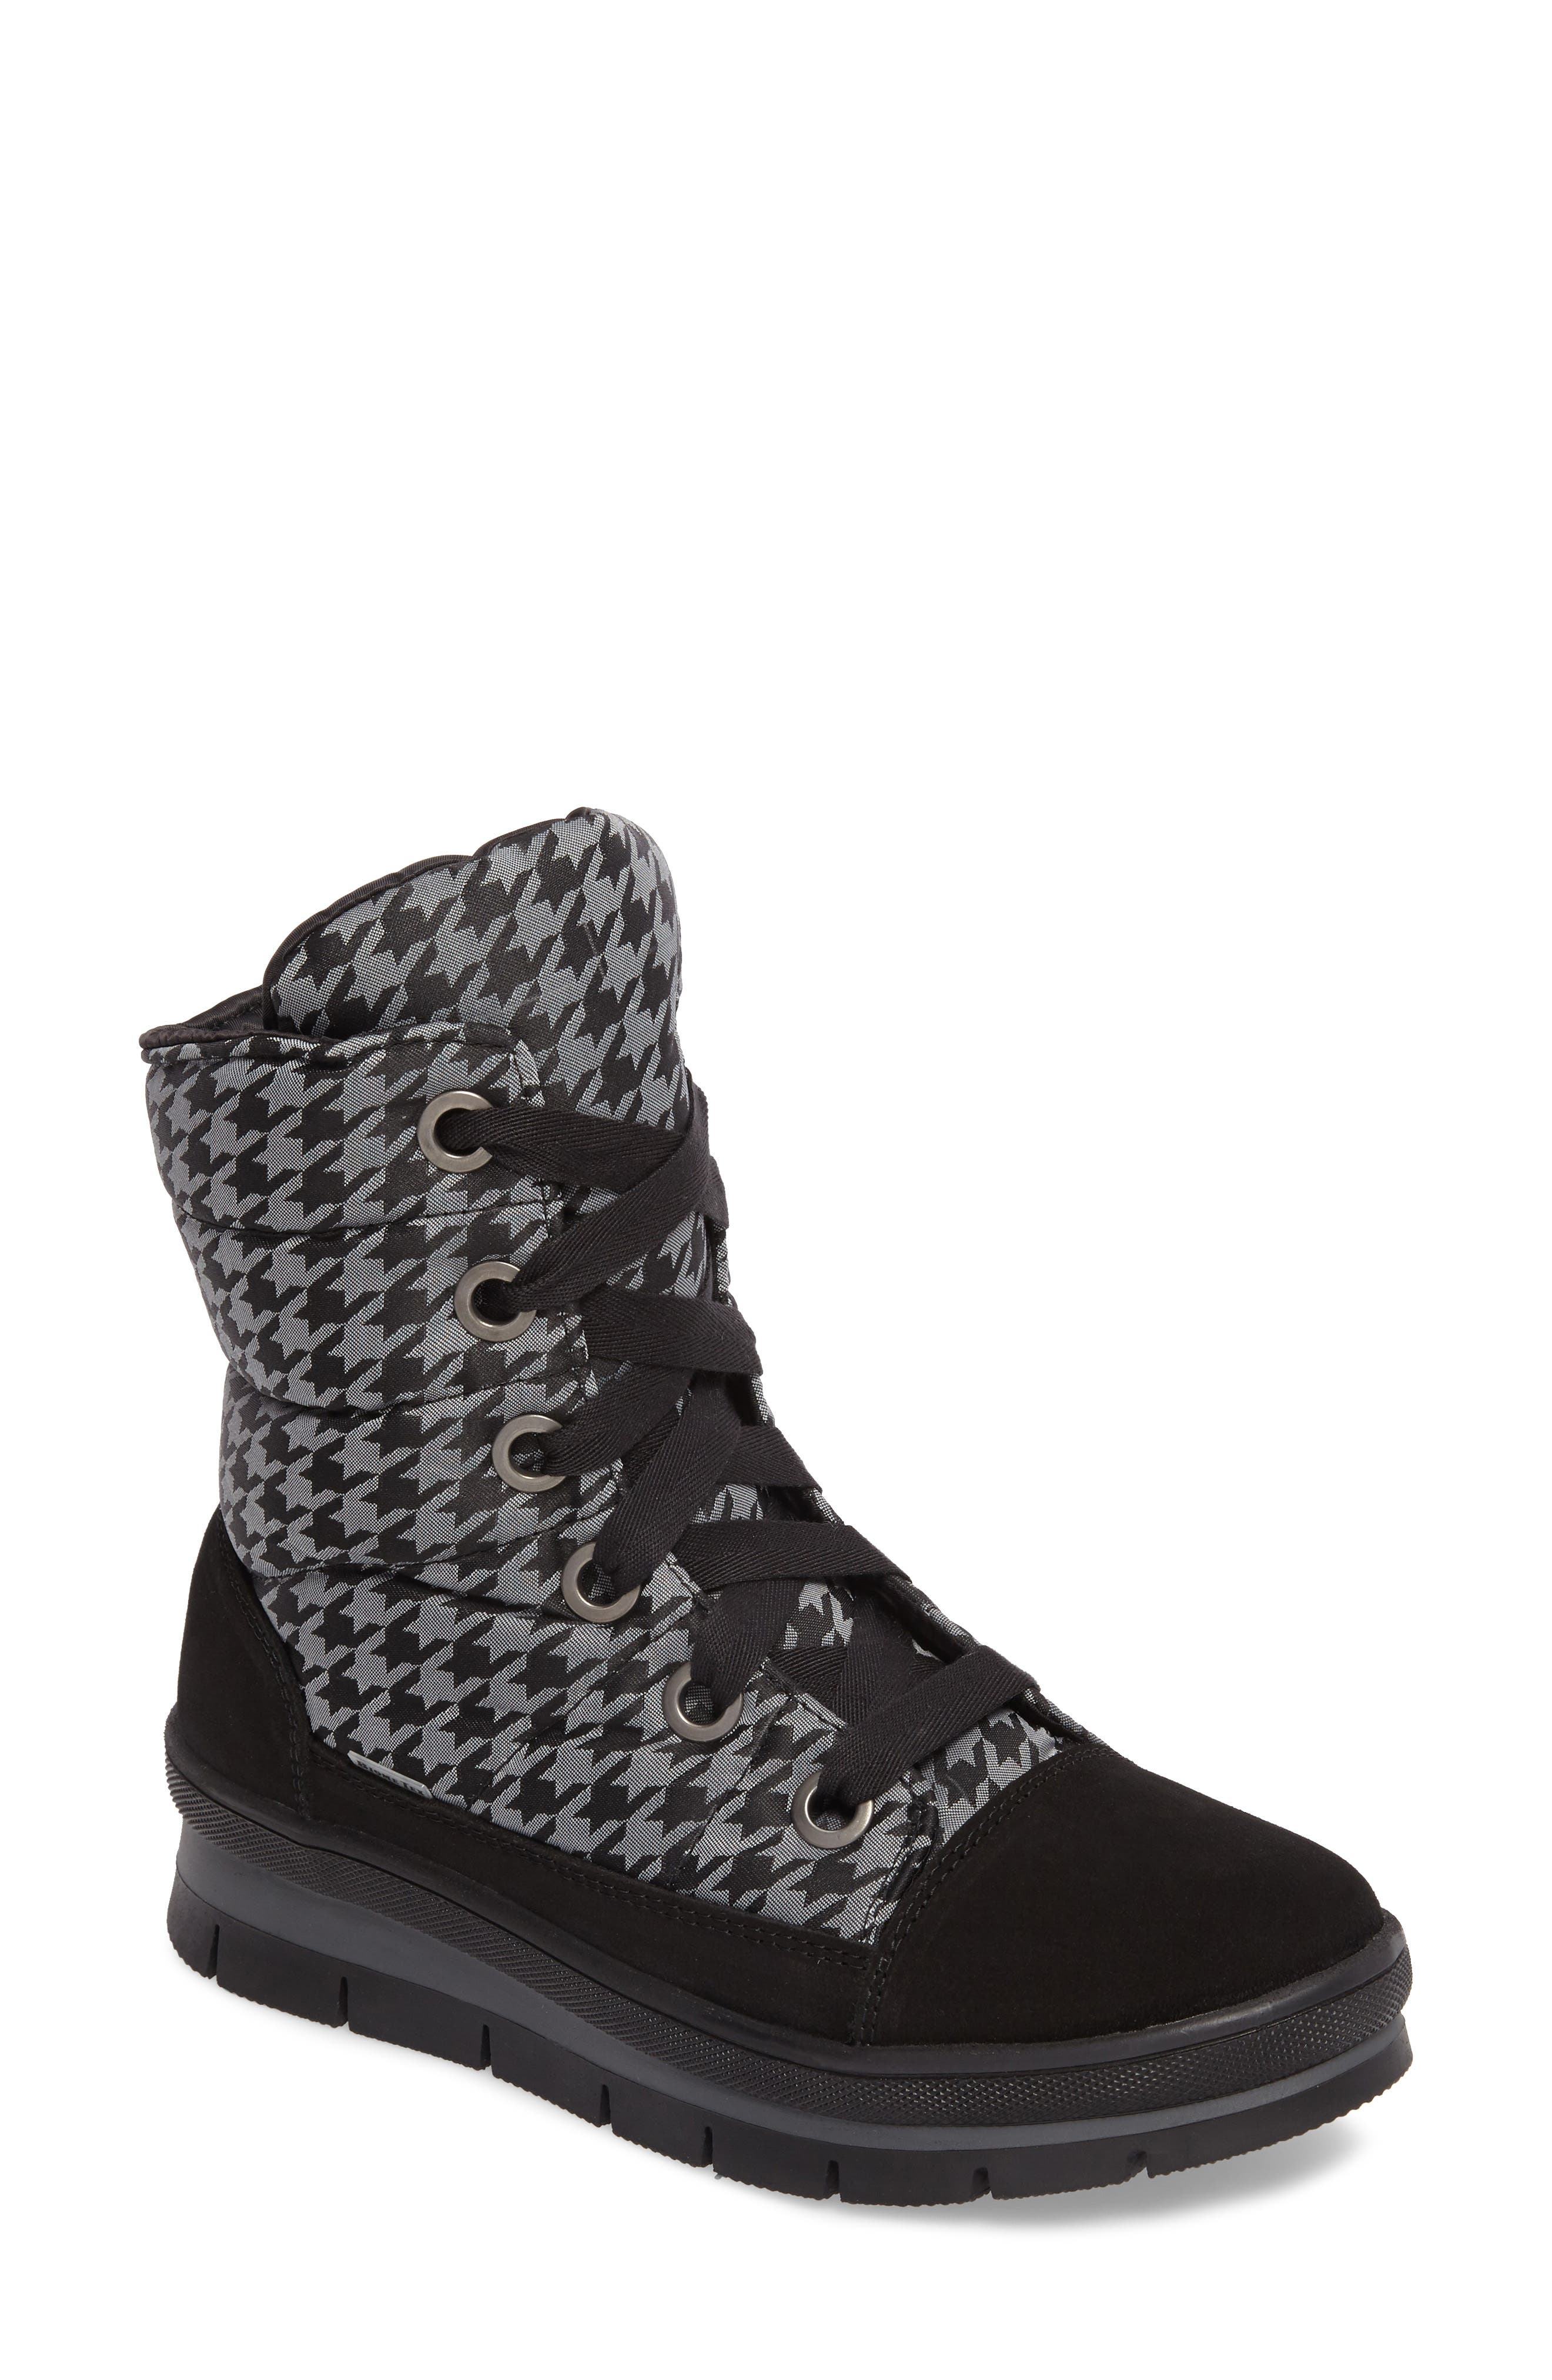 Meribel Waterproof Channel Quilted Lace Up Sneaker Boot,                             Main thumbnail 1, color,                             008